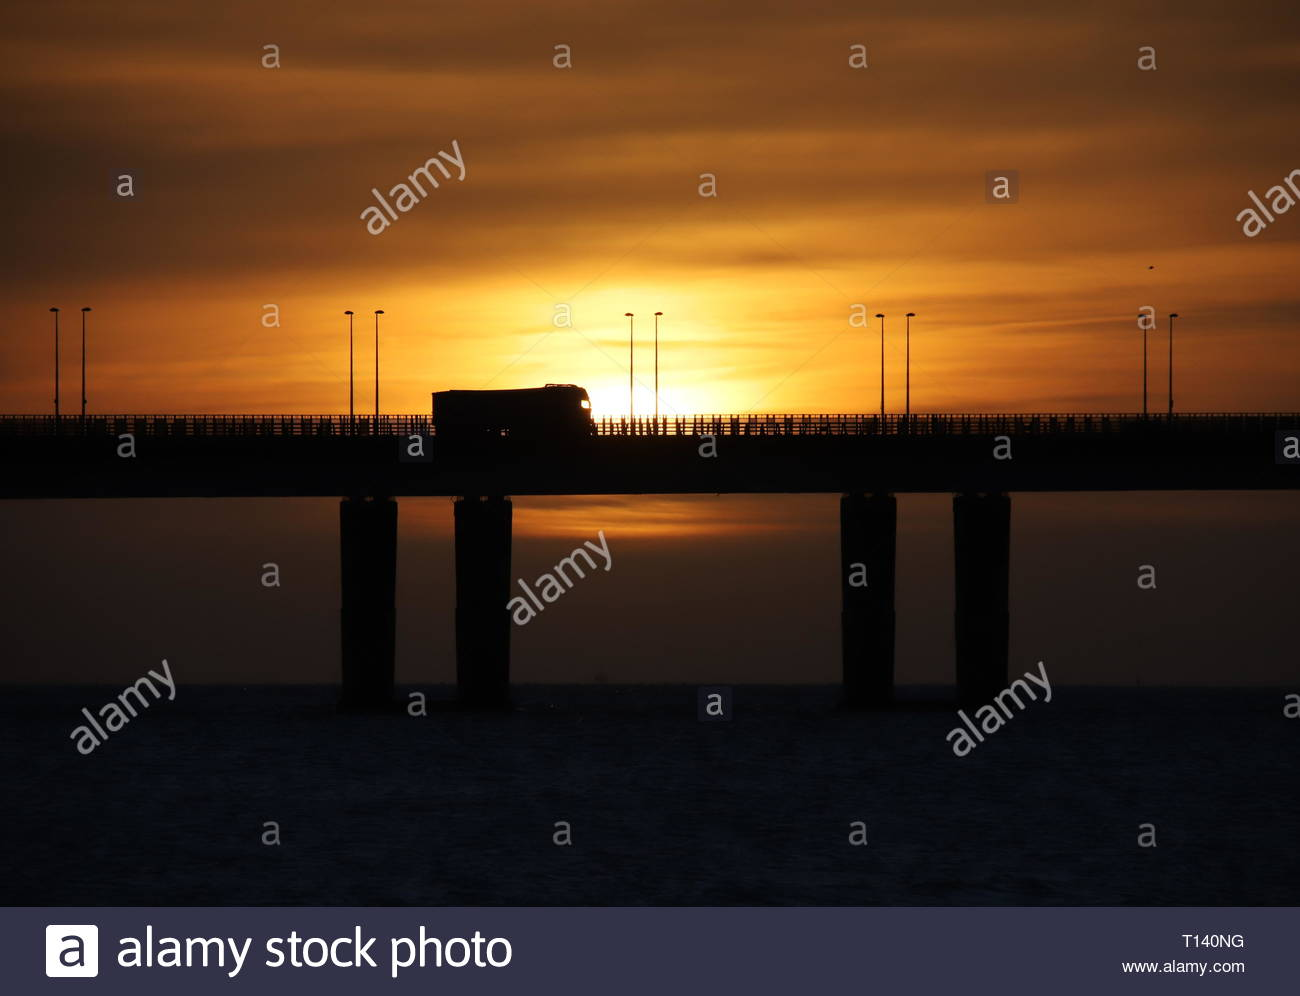 Dundee, UK. 23rd Mar, 2019. Tay Road Bridge at Sunrise, a bright start to a sunny day in Tayside. Credit: Stephen Finn/Alamy Live News - Stock Image